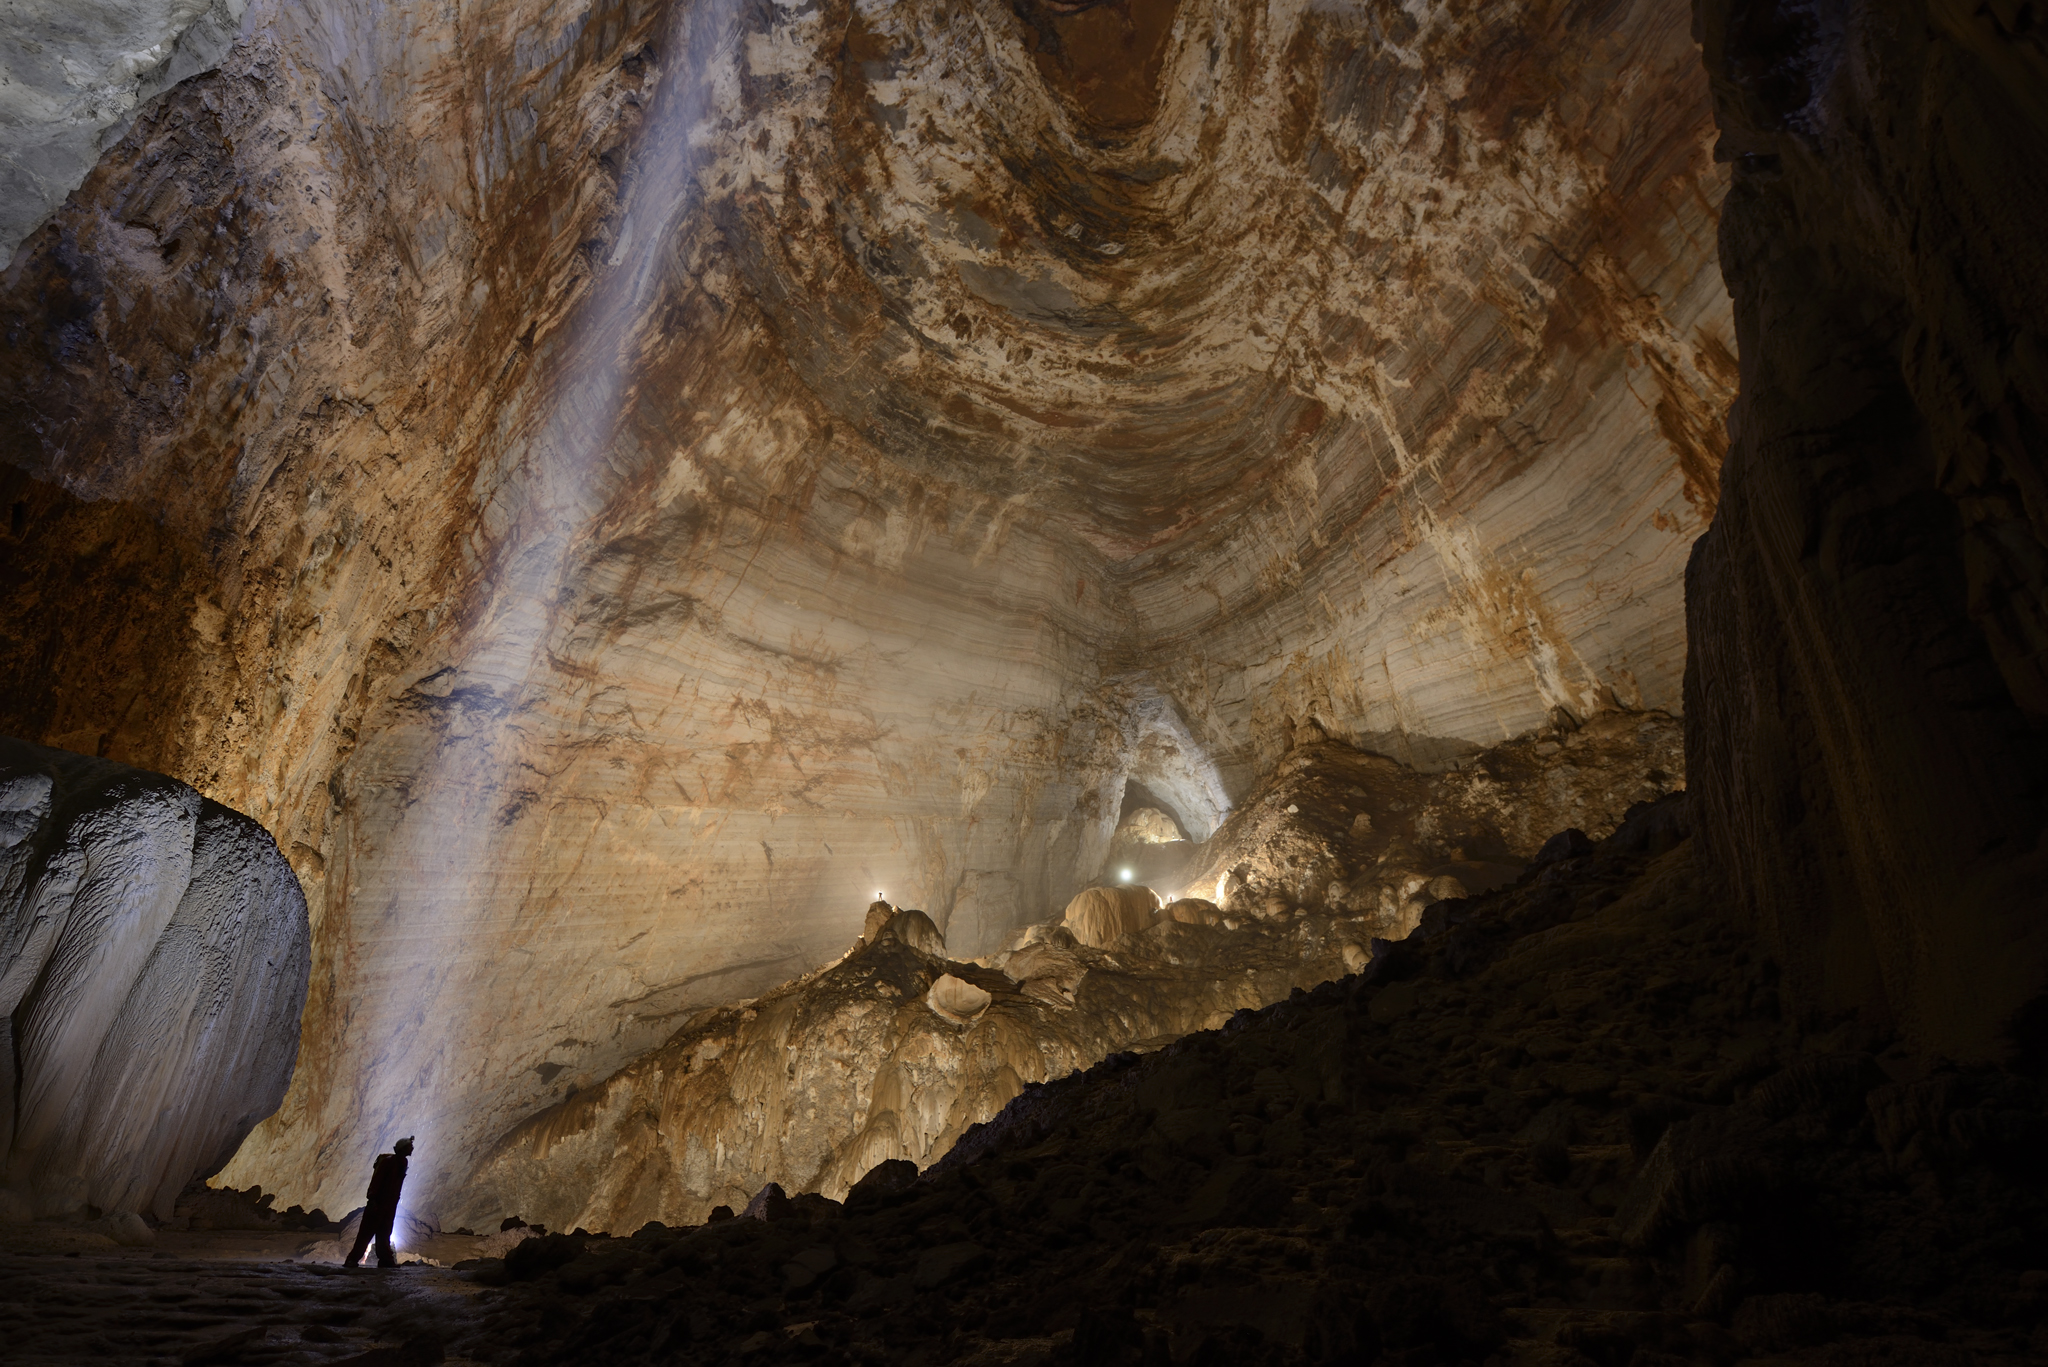 Drawn cavern subterranean Geographic Rock  National of